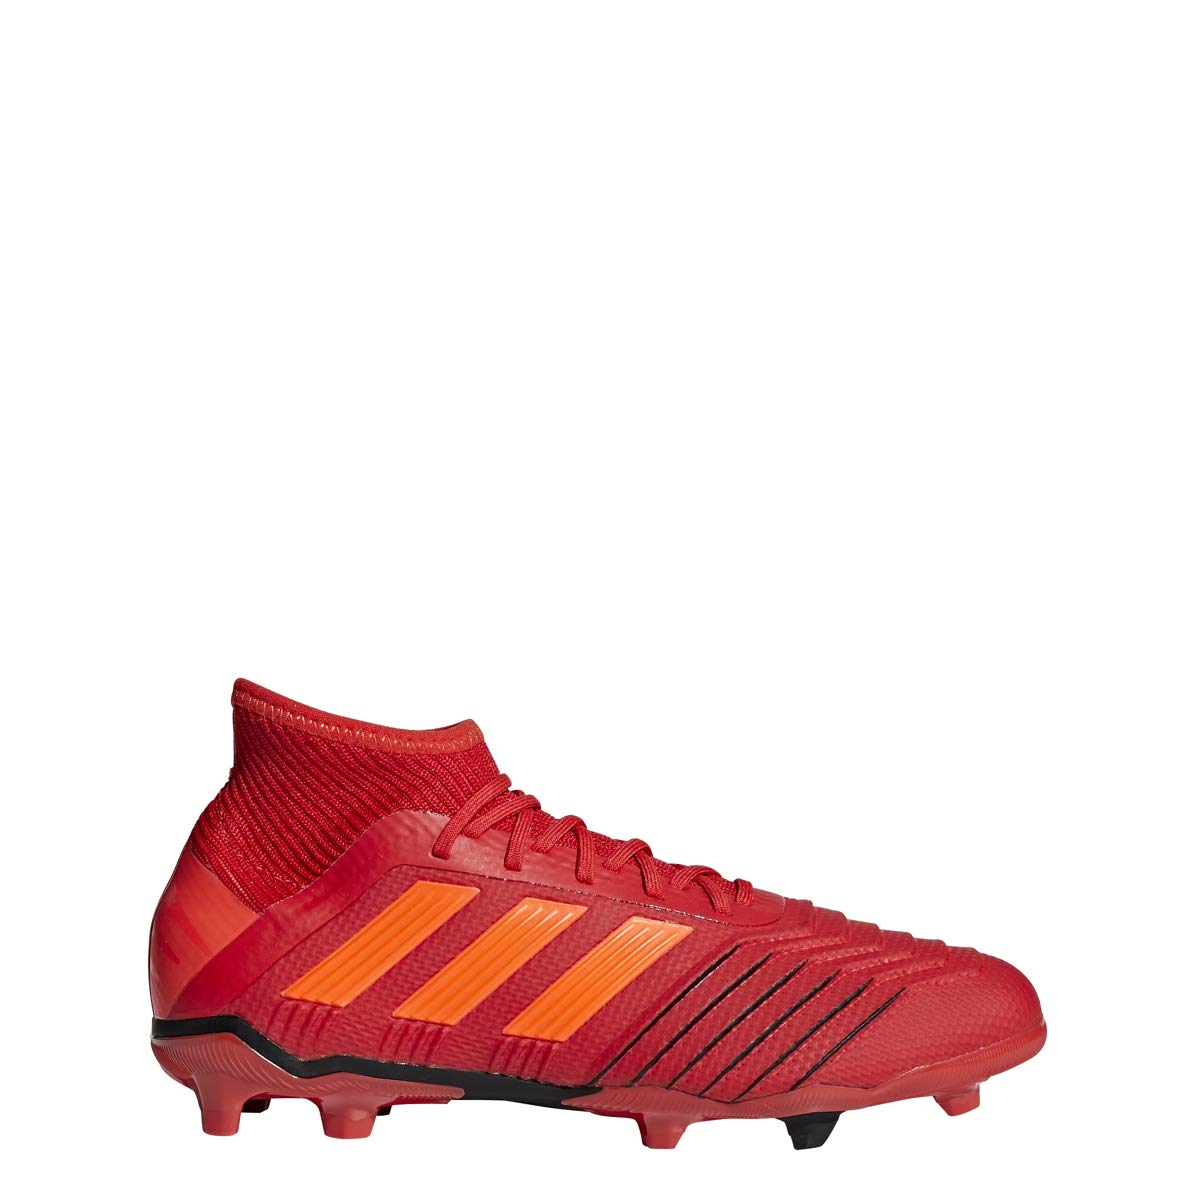 adidas Predator 19.1 FG Cleat - Kid's Soccer 5.5 Action Red/Solar Red/Black